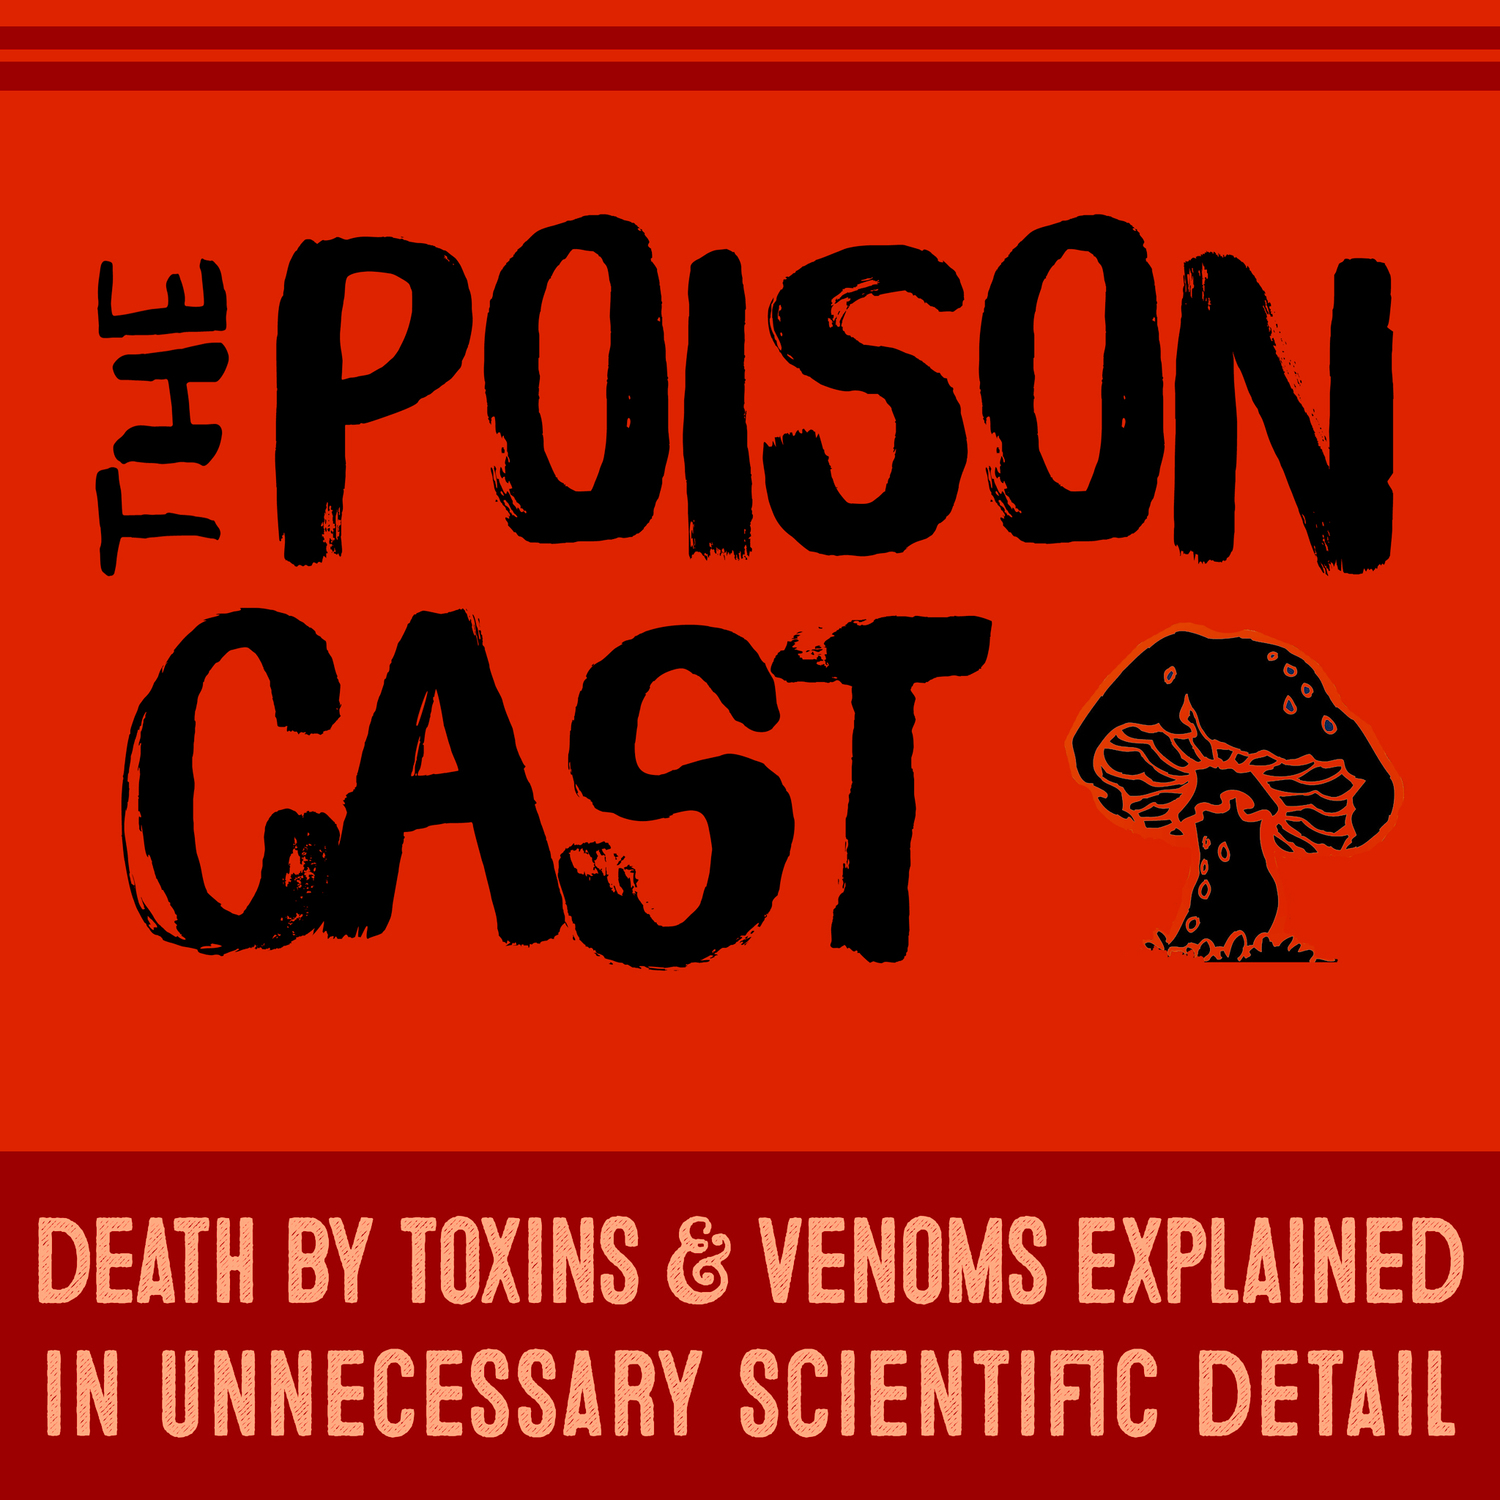 The Poisoncast